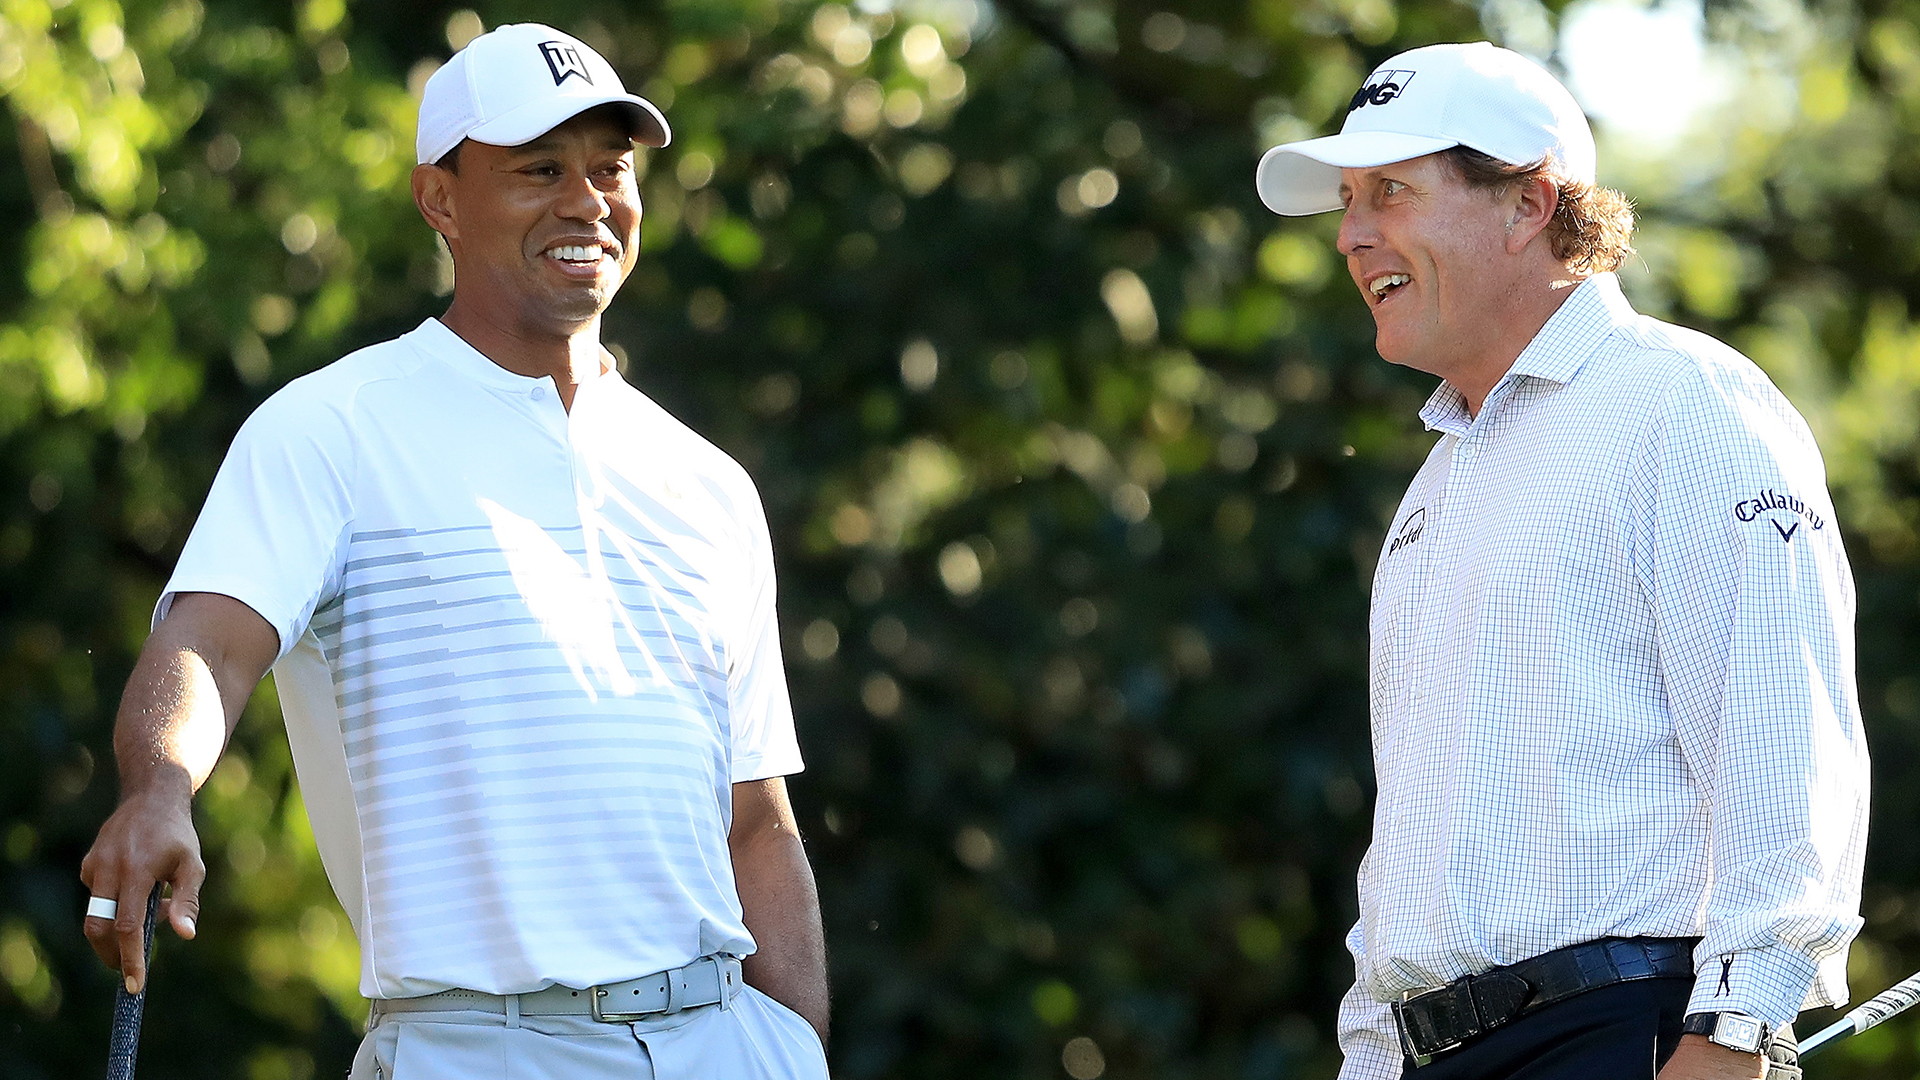 Tiger Woods and Phil Mickelson at the 2018 Masters.